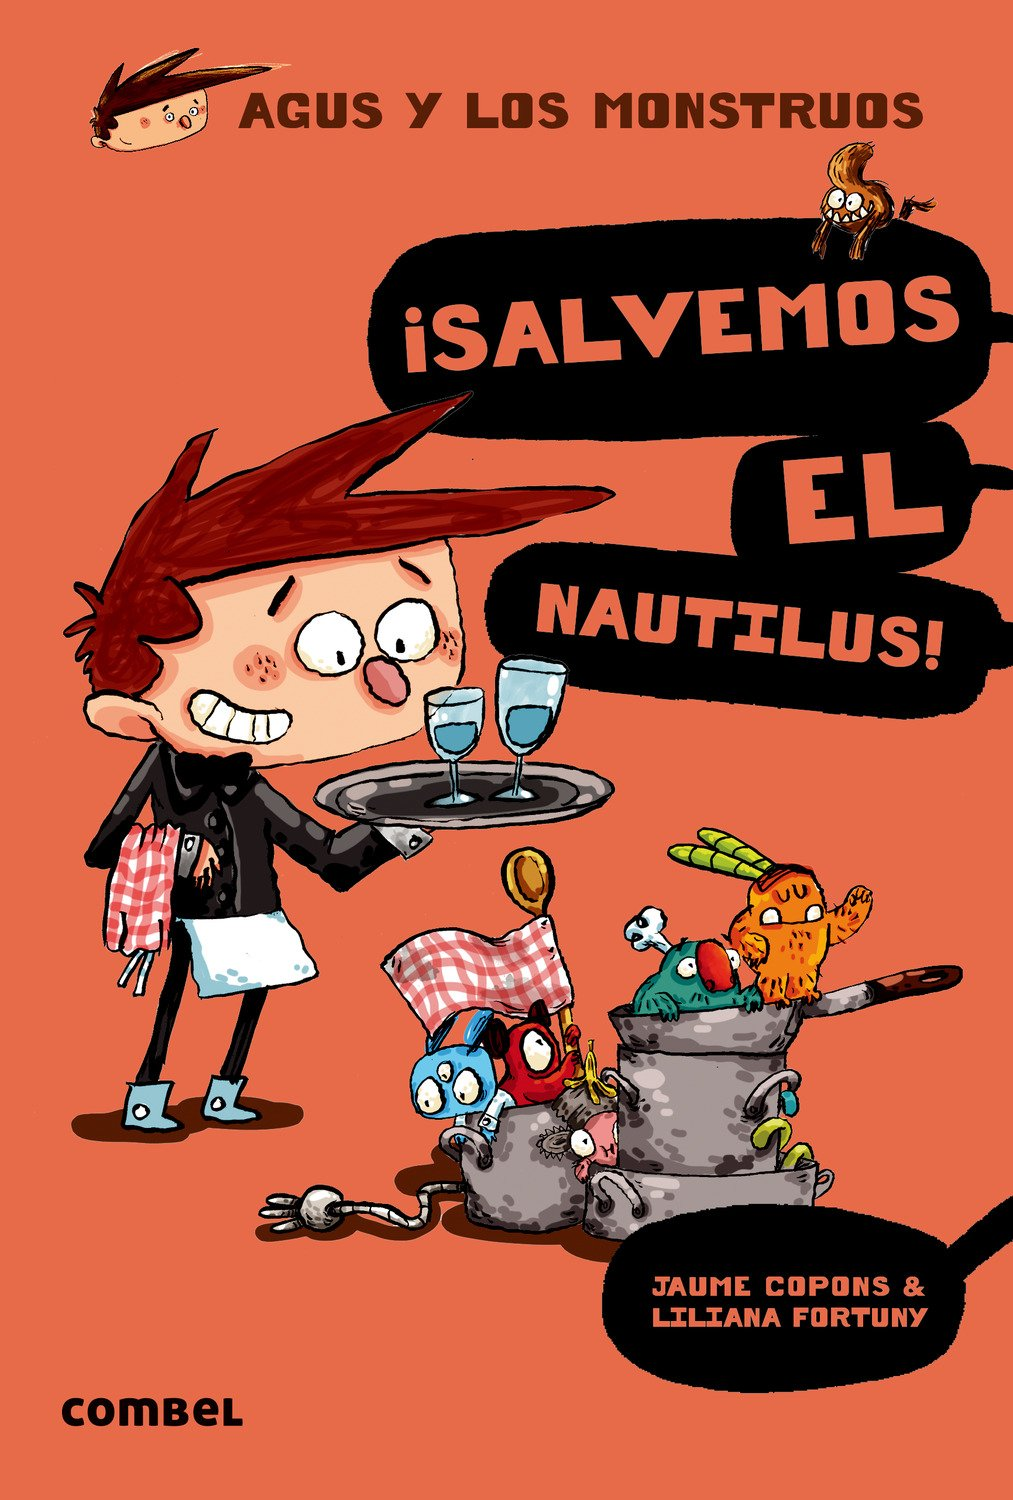 Download ¡Salvemos el Nautilus! (Agus y los monstruos) (Spanish Edition) PDF